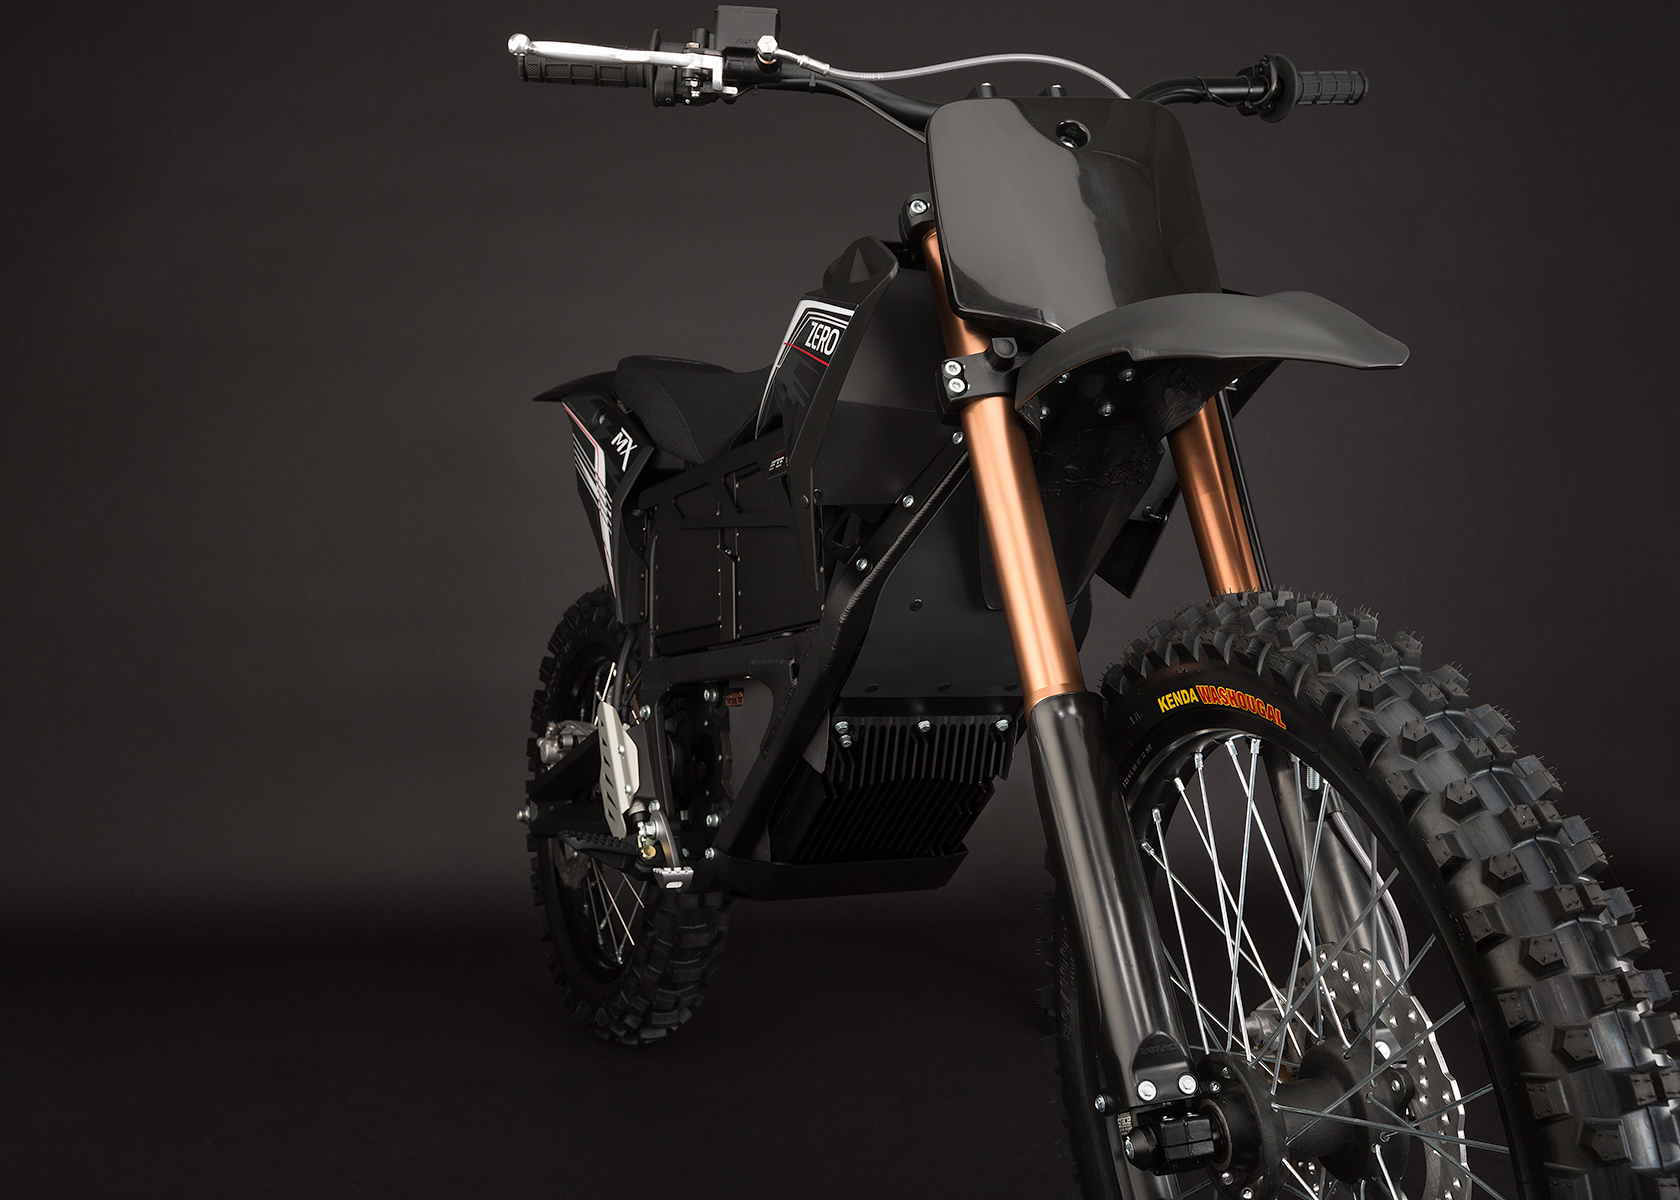 '.2013 Zero MX Electric Motorcycle: Front Fork.'